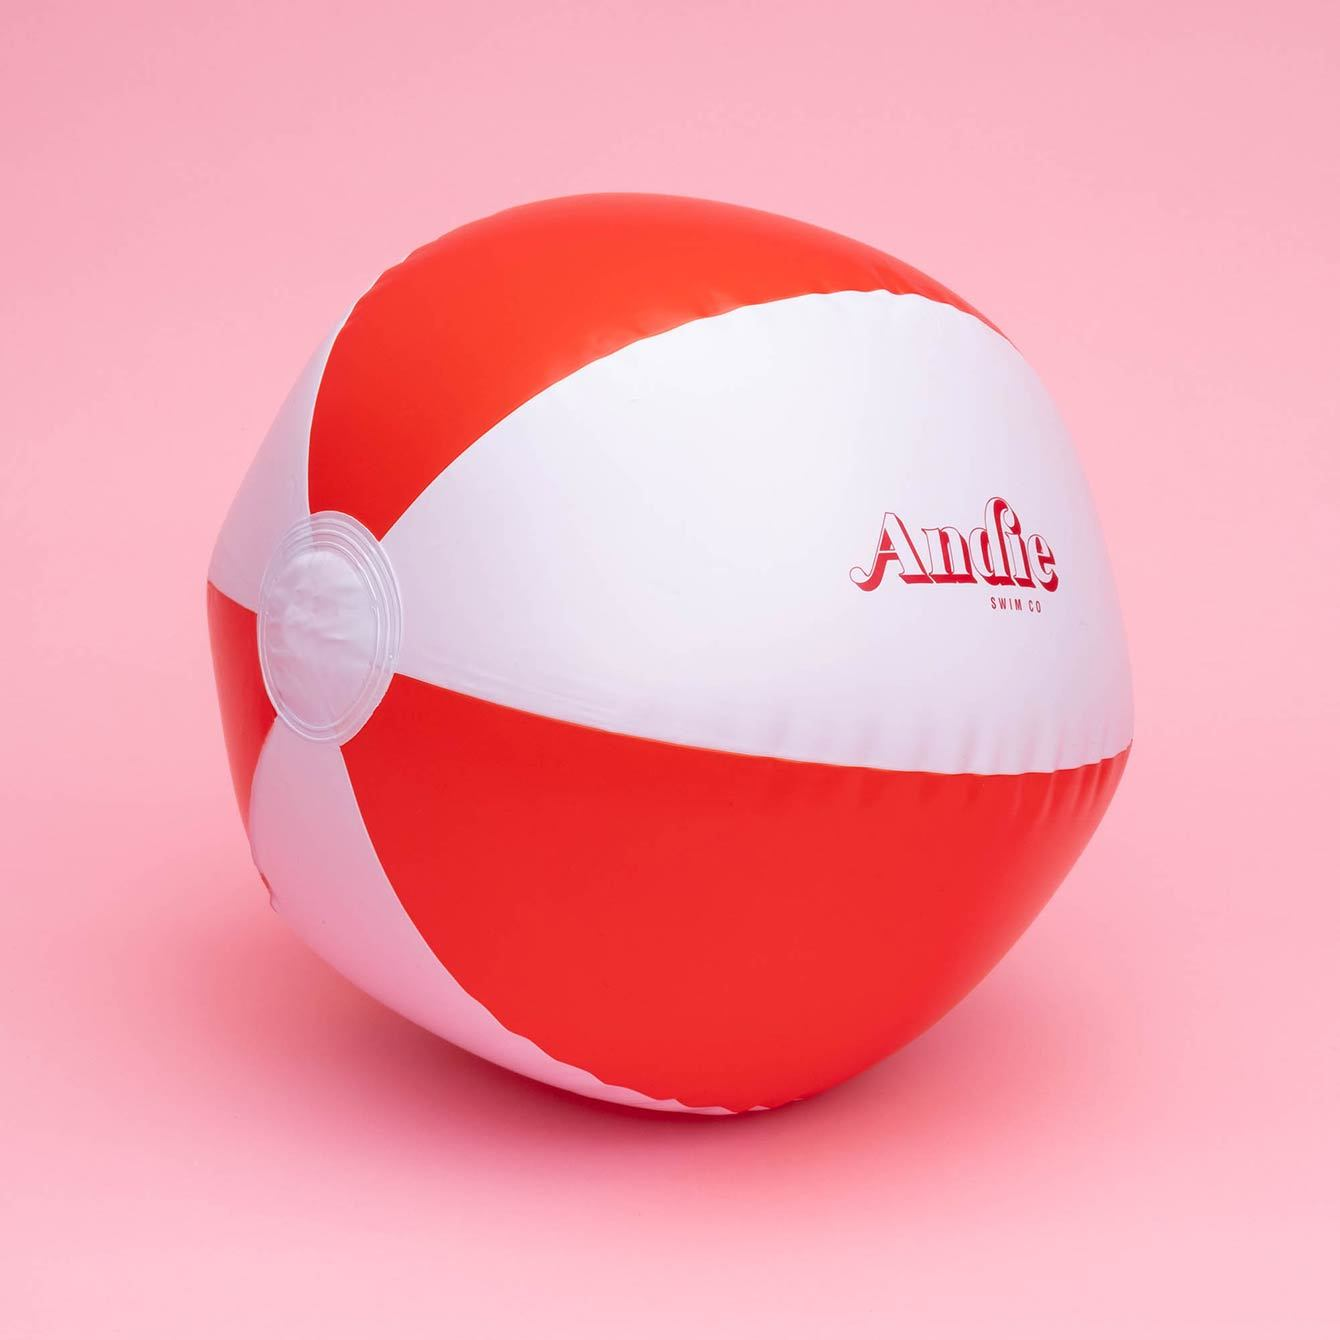 The Andie Ball